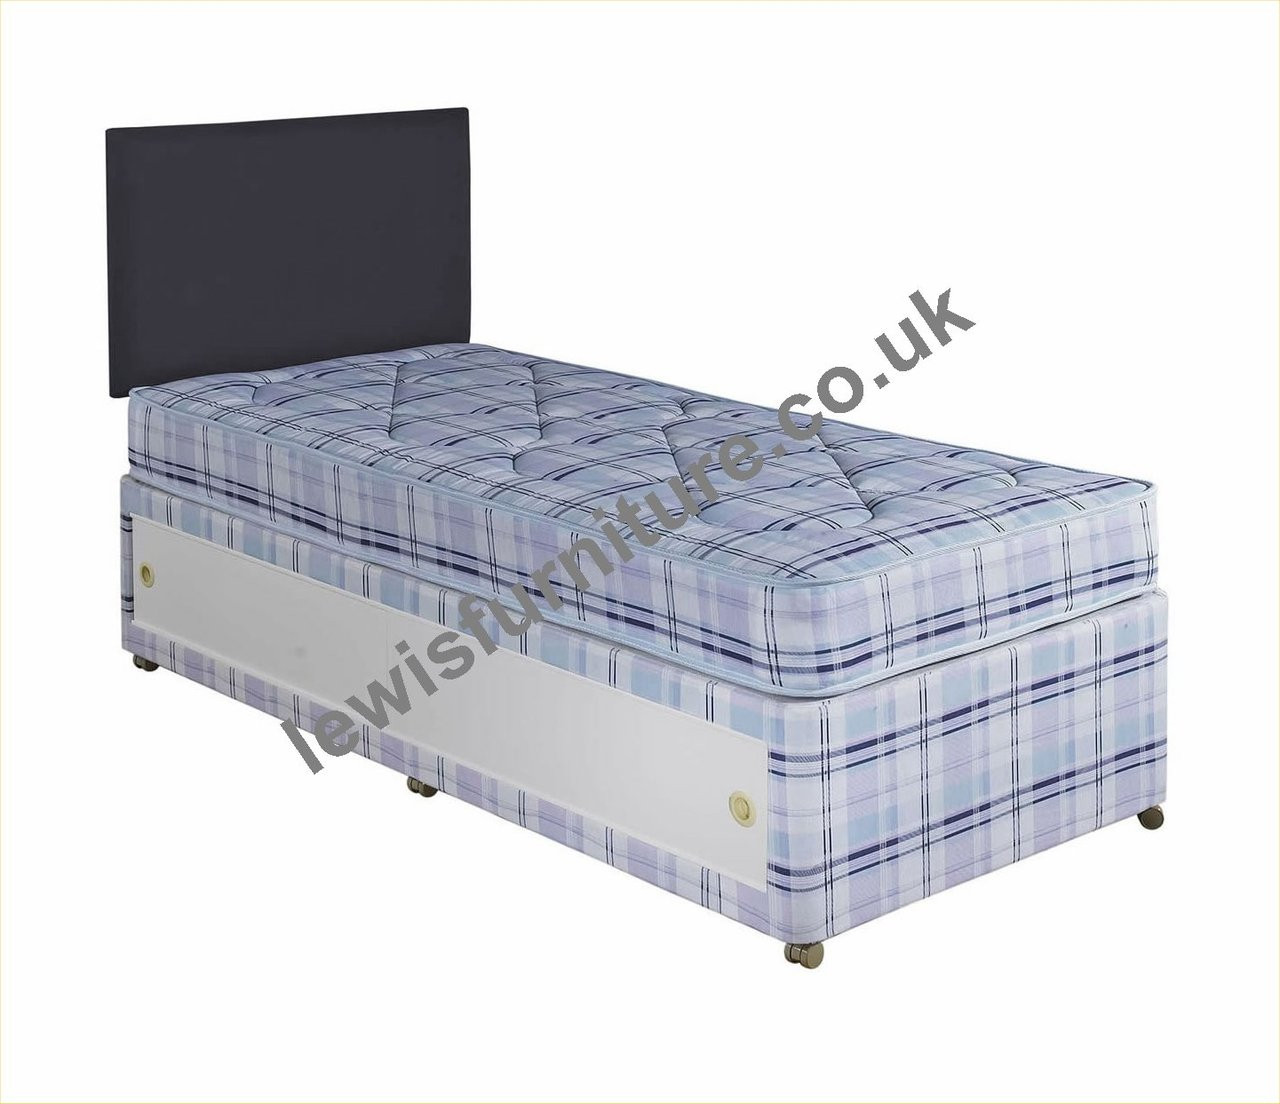 Divan Bed And Mattress Deals Kozeesleep Dorchester Divan Set With Slidestore Ideal For